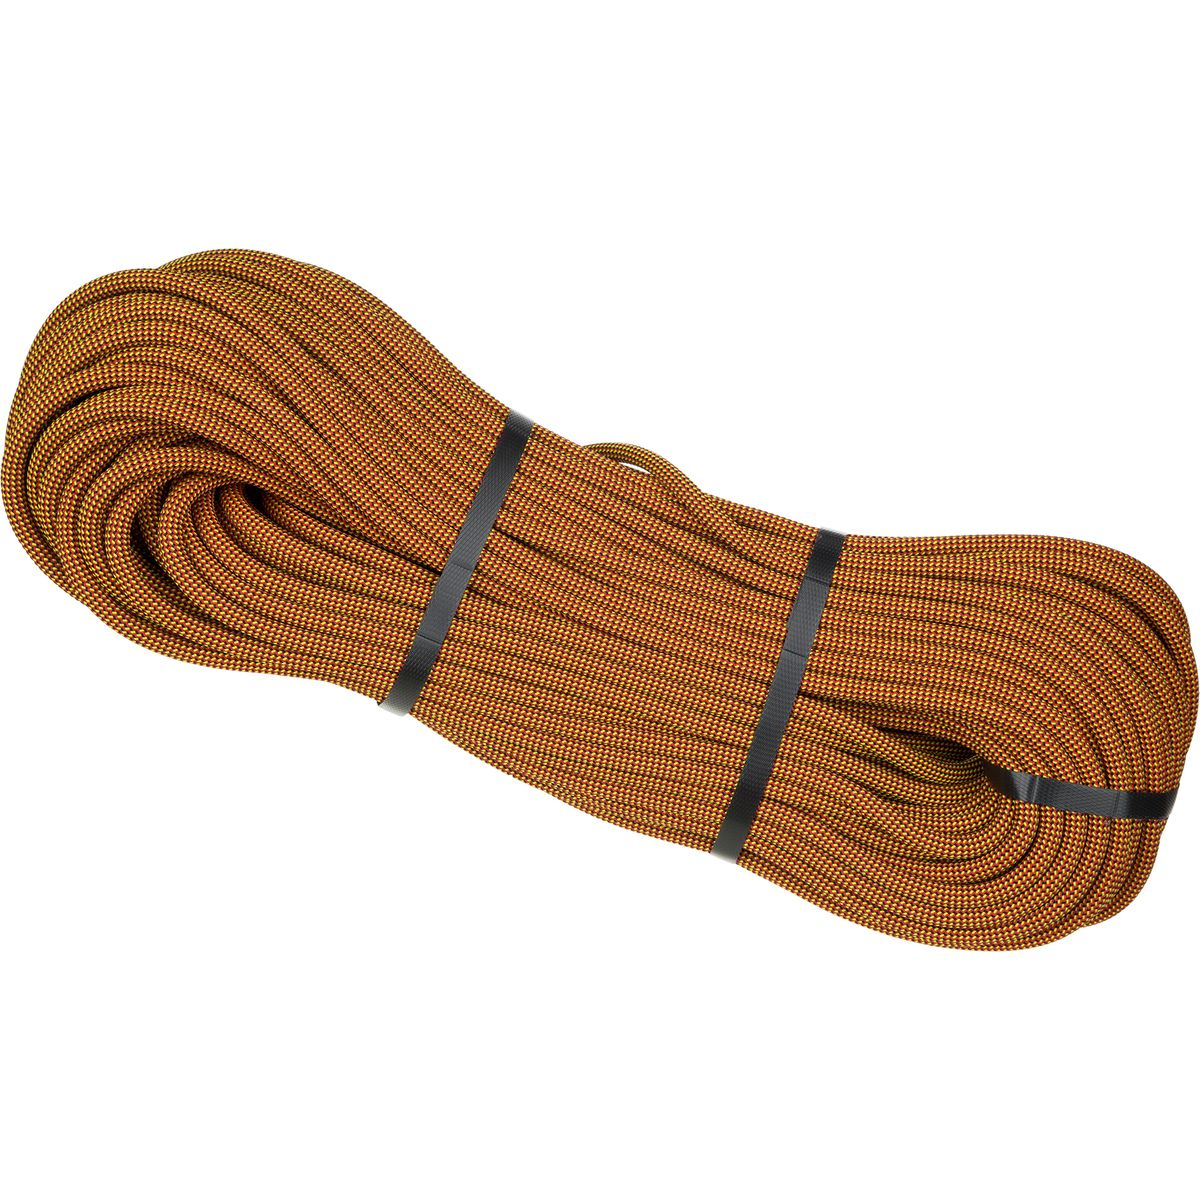 photo of a Maxim dynamic rope